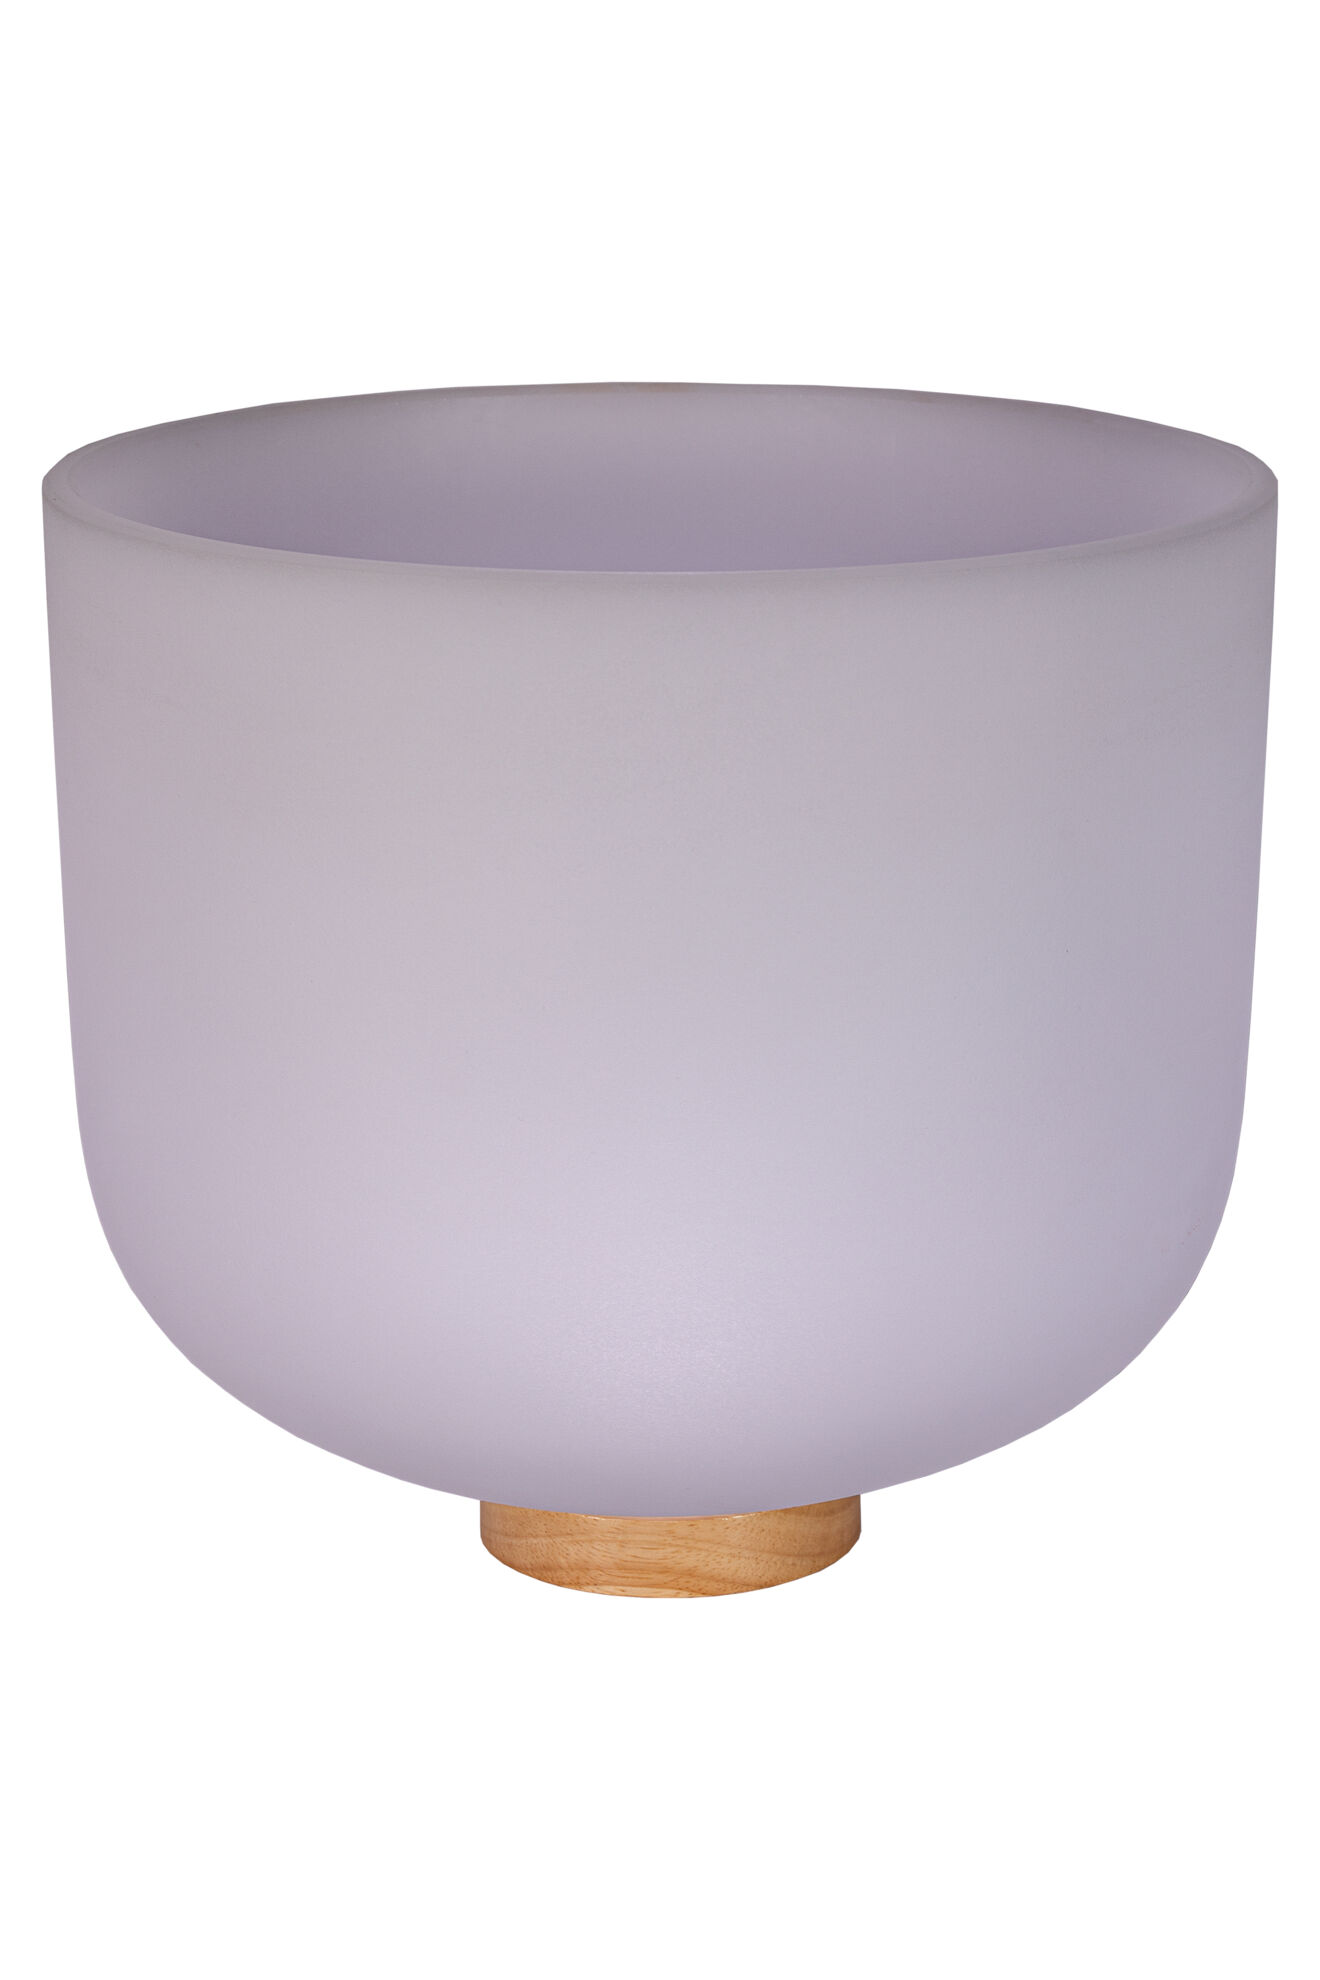 12 Frosted Quartz Singing Bowl Note G Perfect